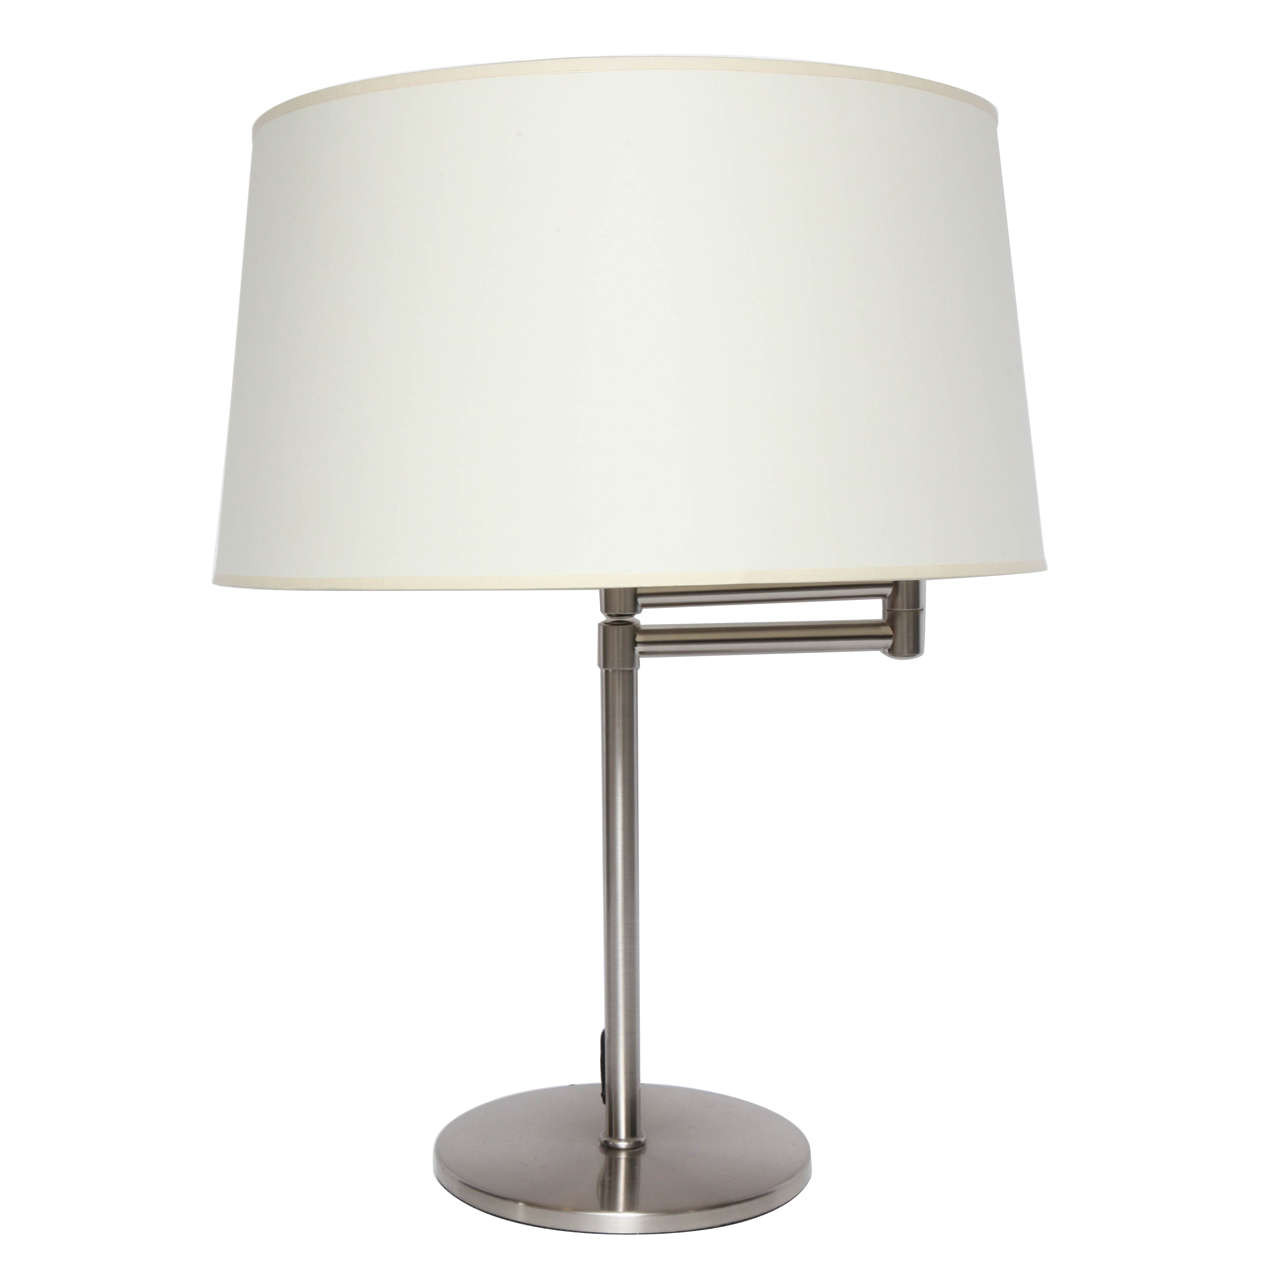 Best ideas about Swing Arm Desk Lamp . Save or Pin Brushed Metal Swing Arm Desk Lamp at 1stdibs Now.